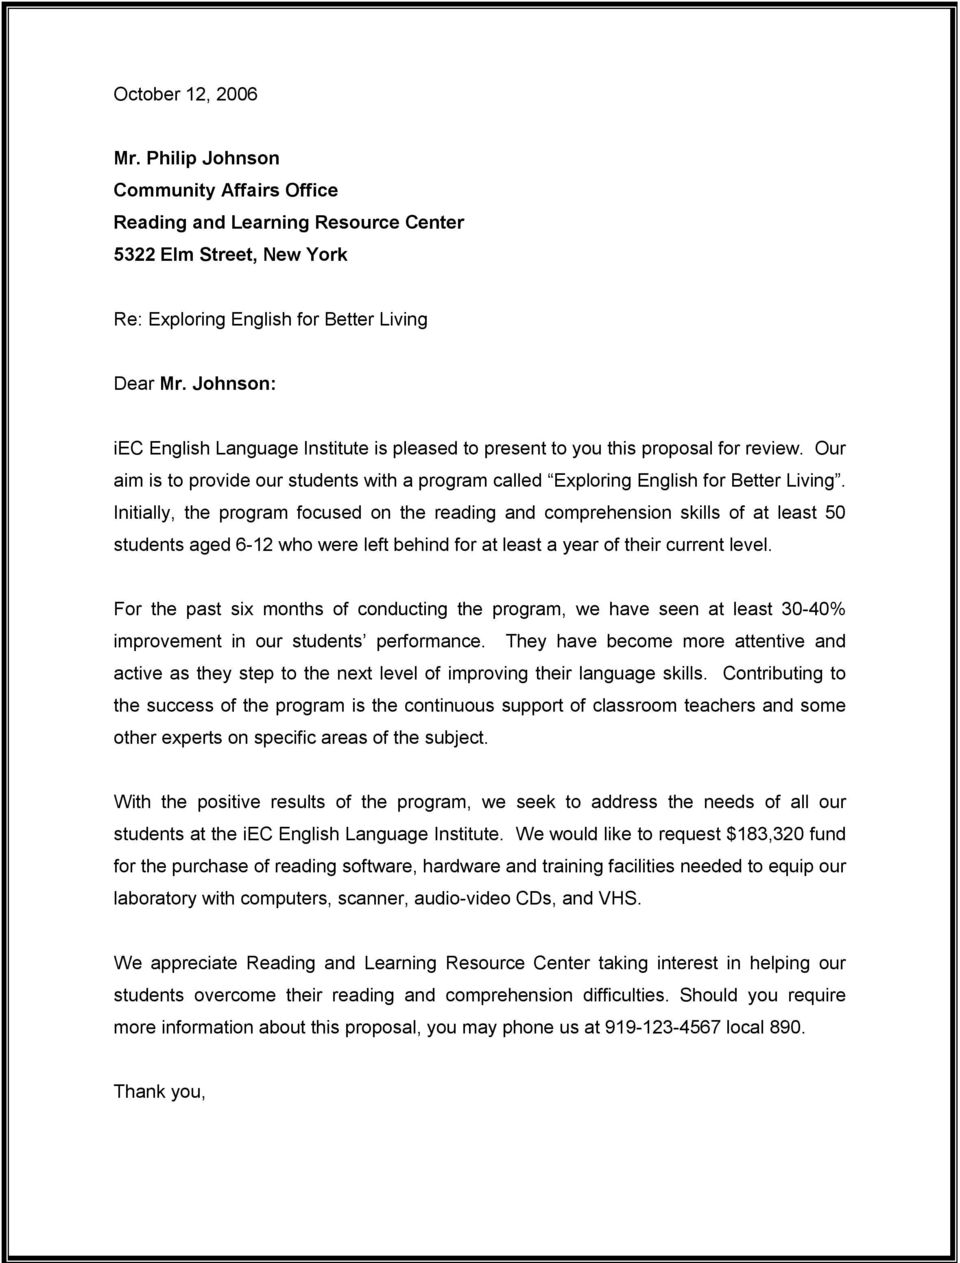 Initially, the program focused on the reading and comprehension skills of at least 50 students aged 6 12 who were left behind for at least a year of their current level.